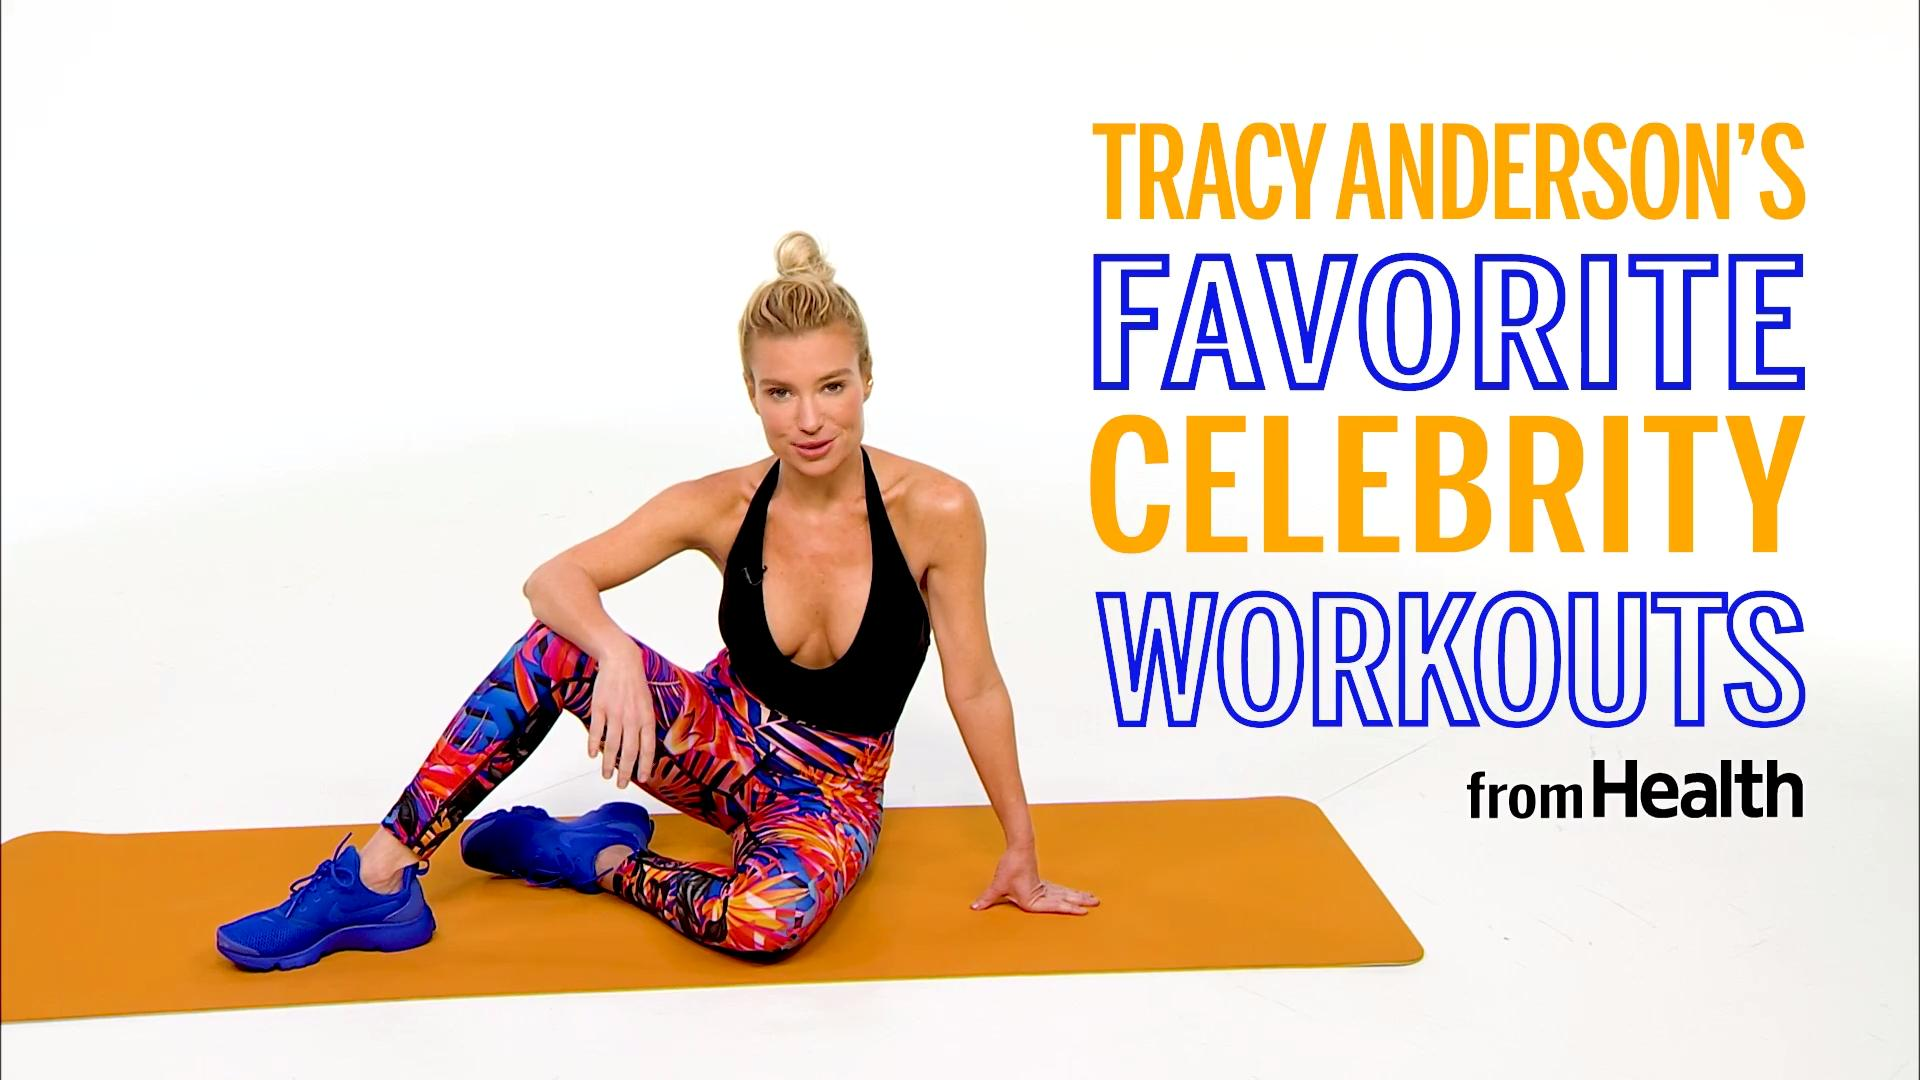 5 Exercises for Rock-Hard Abs From Gwyneth Paltrow's Trainer